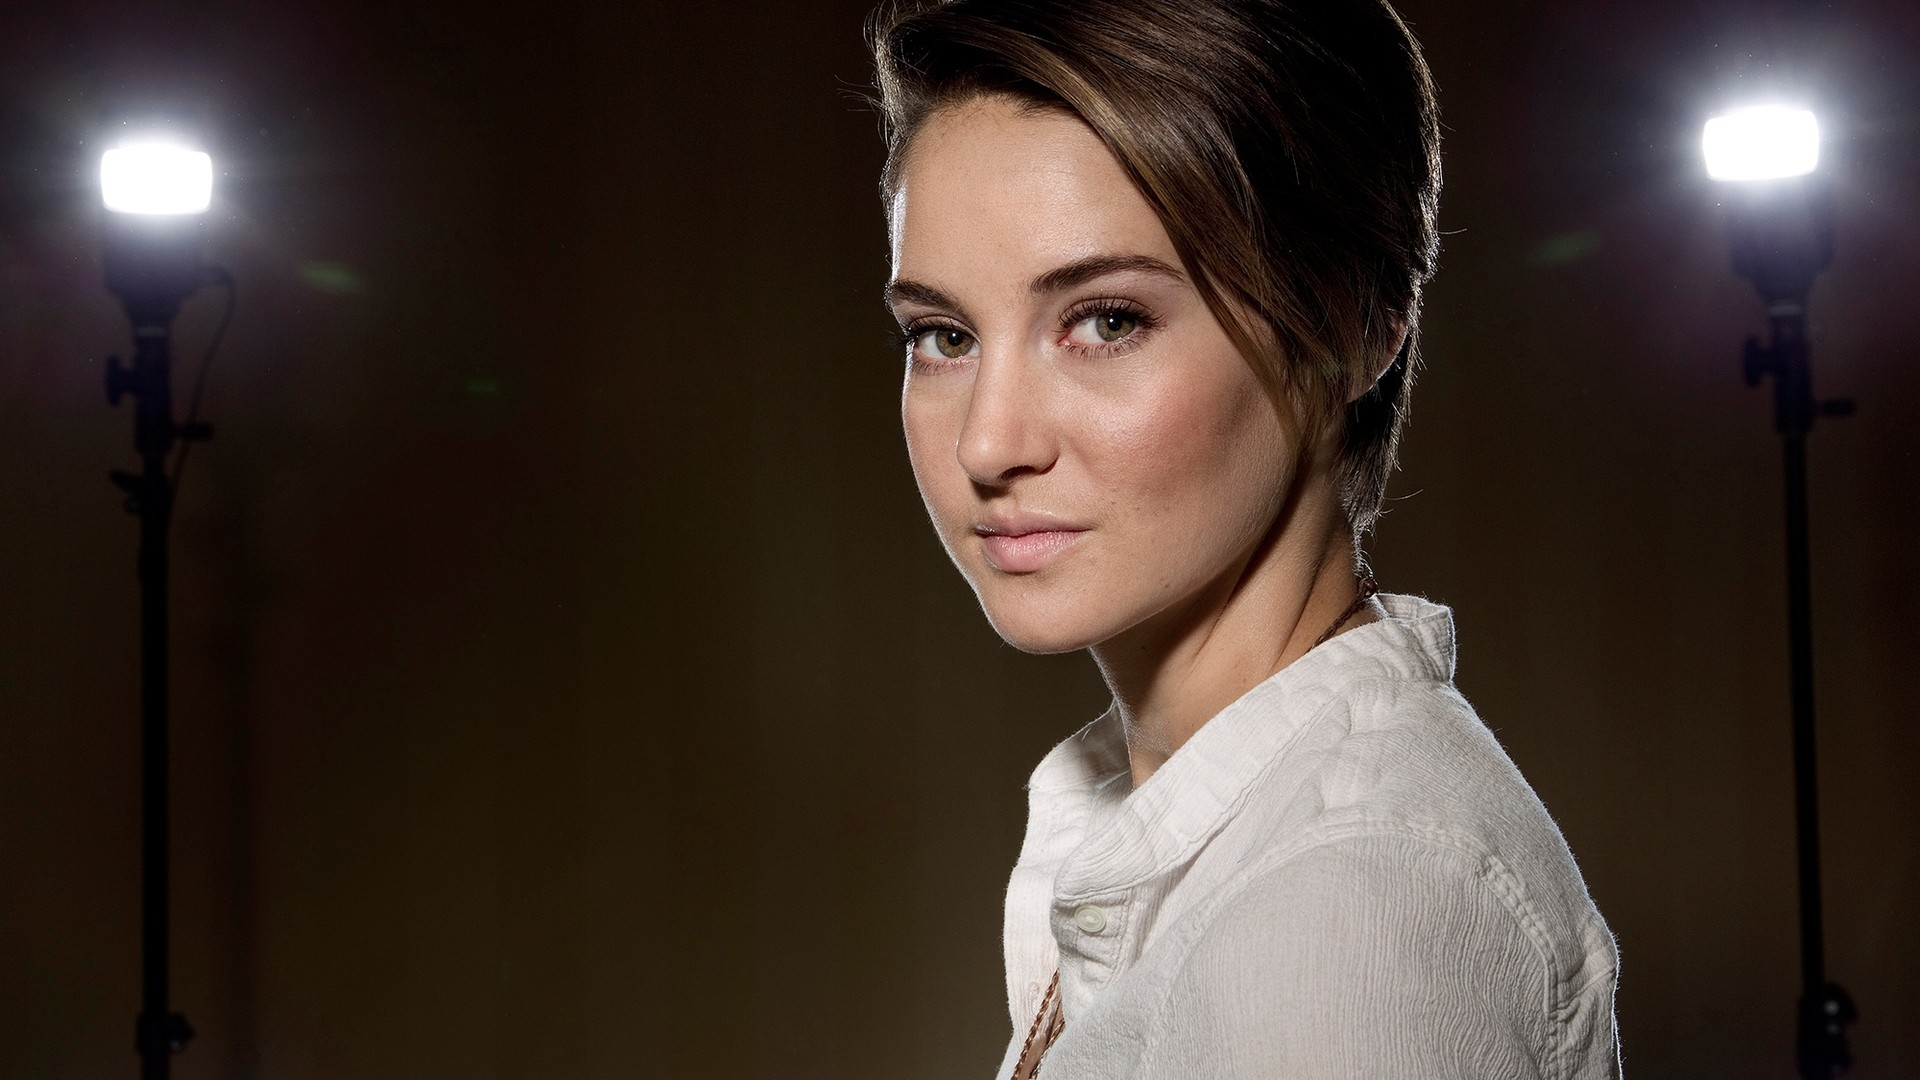 shailene woodley face wallpaper 63138